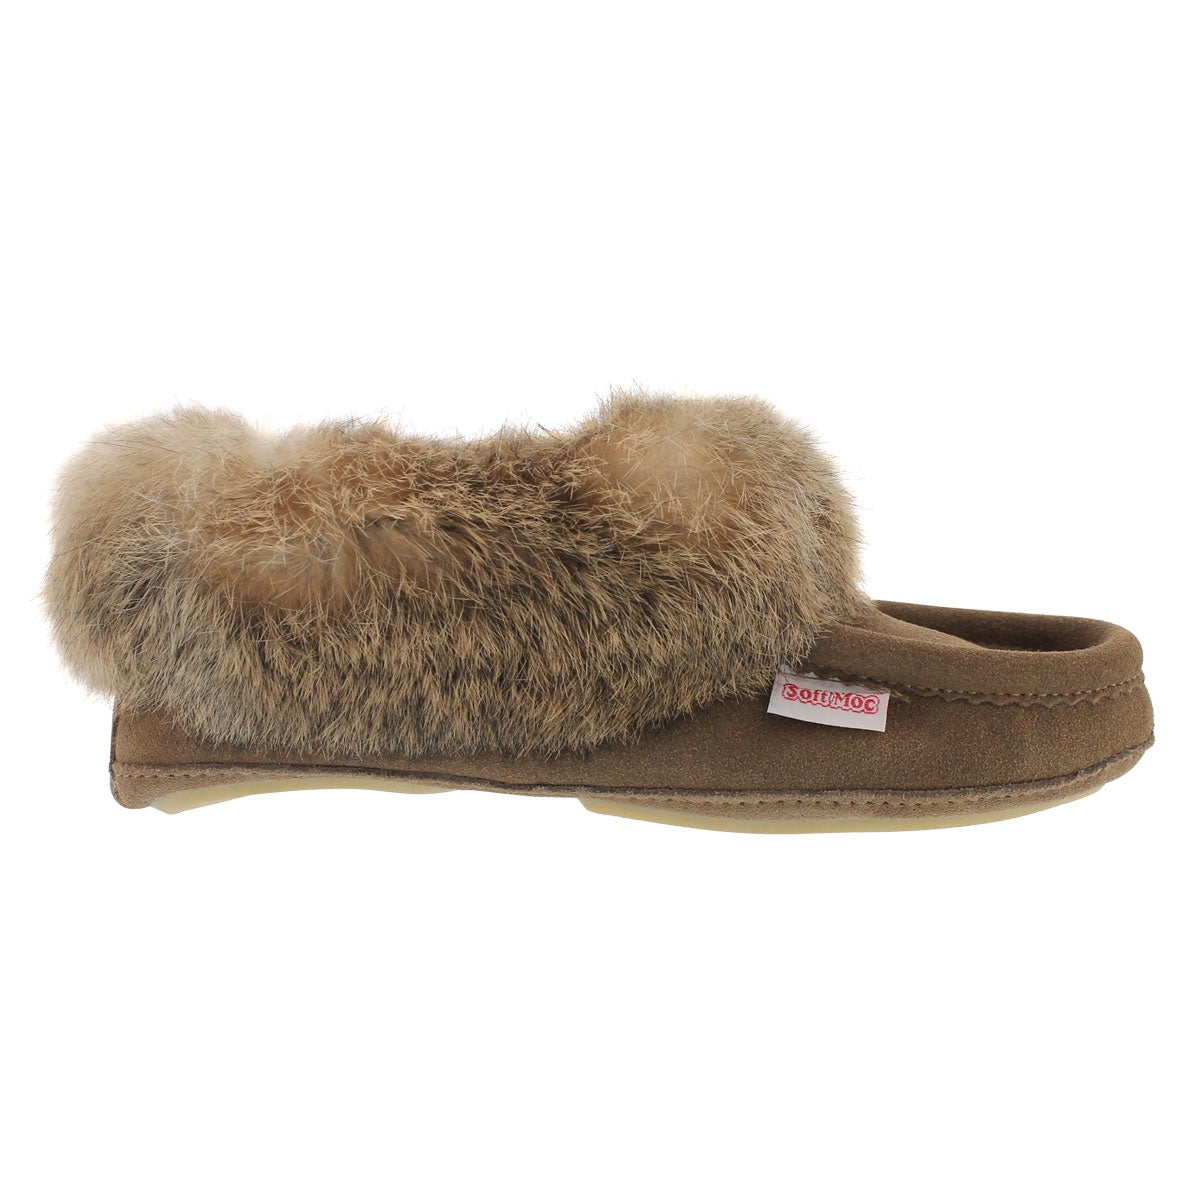 Lds Carrot2 brch sde rabbit fur moccasin